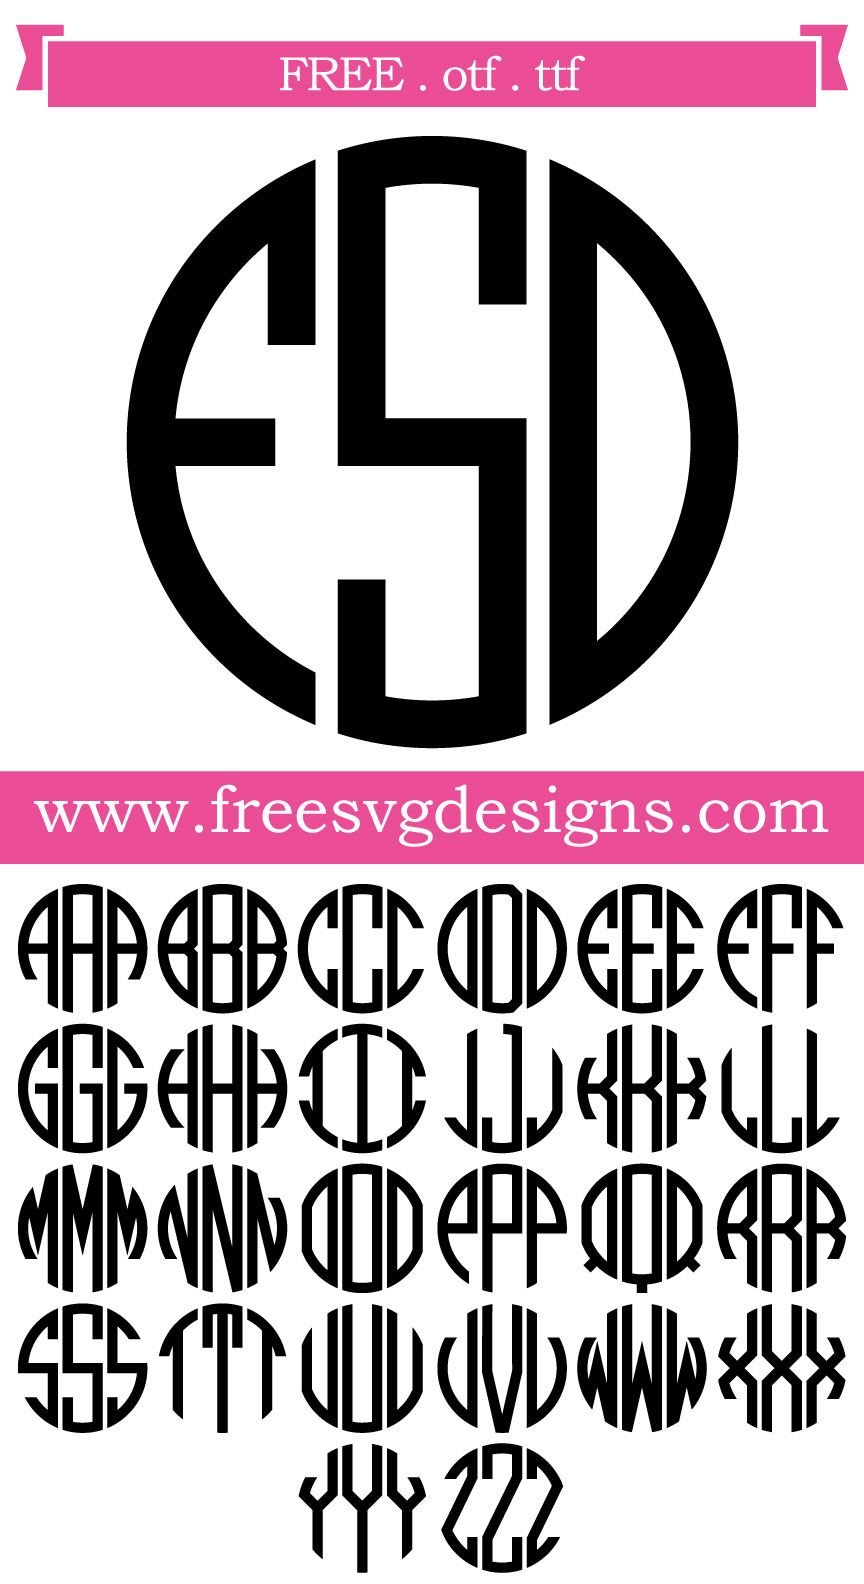 Download Free Font - Round Monogram Font with Banner. This FREE ...